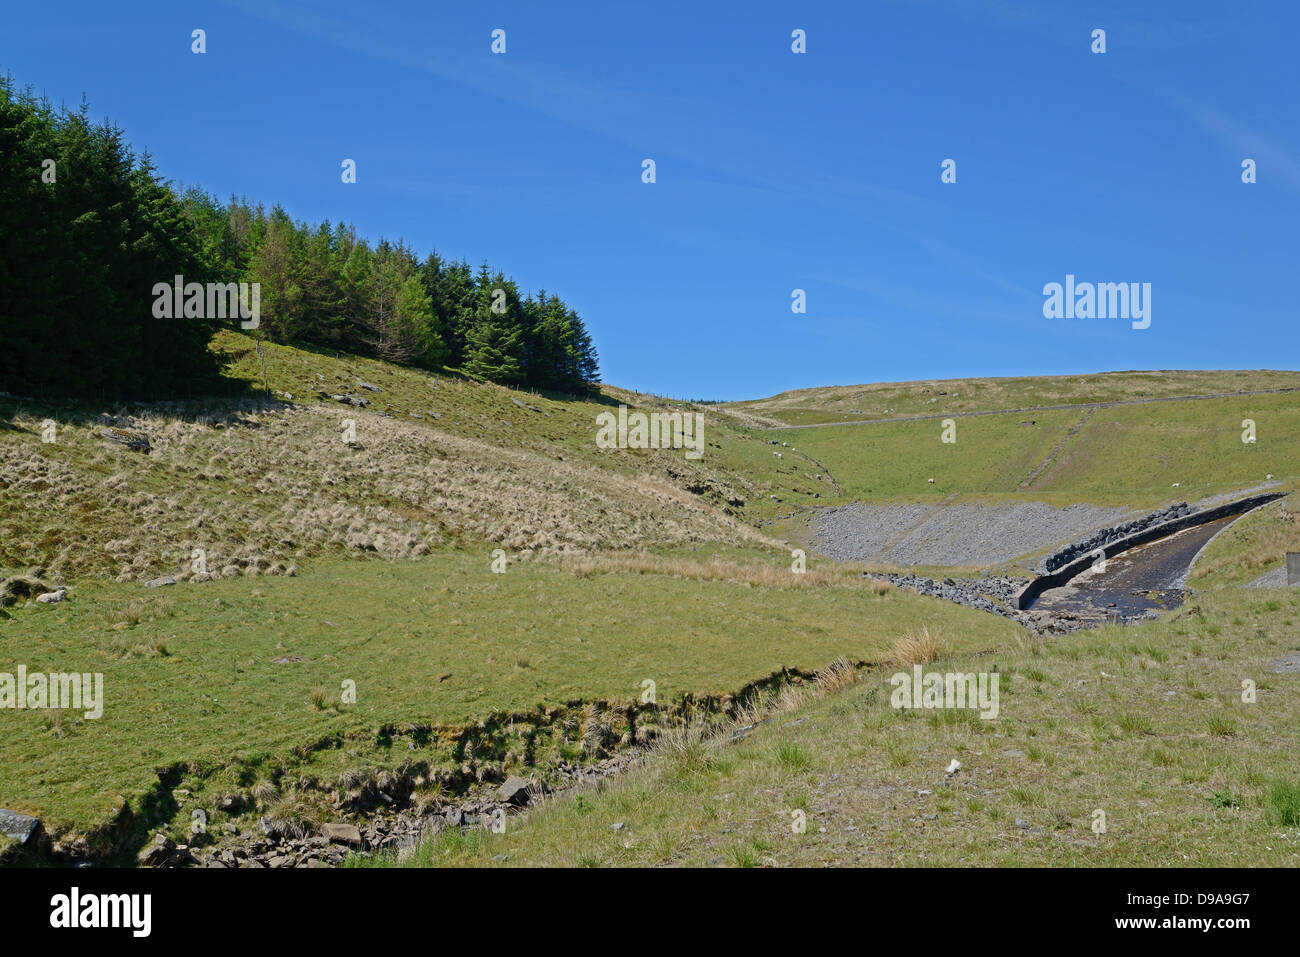 Reservoir spillway and stream on the edge of a forest. - Stock Image